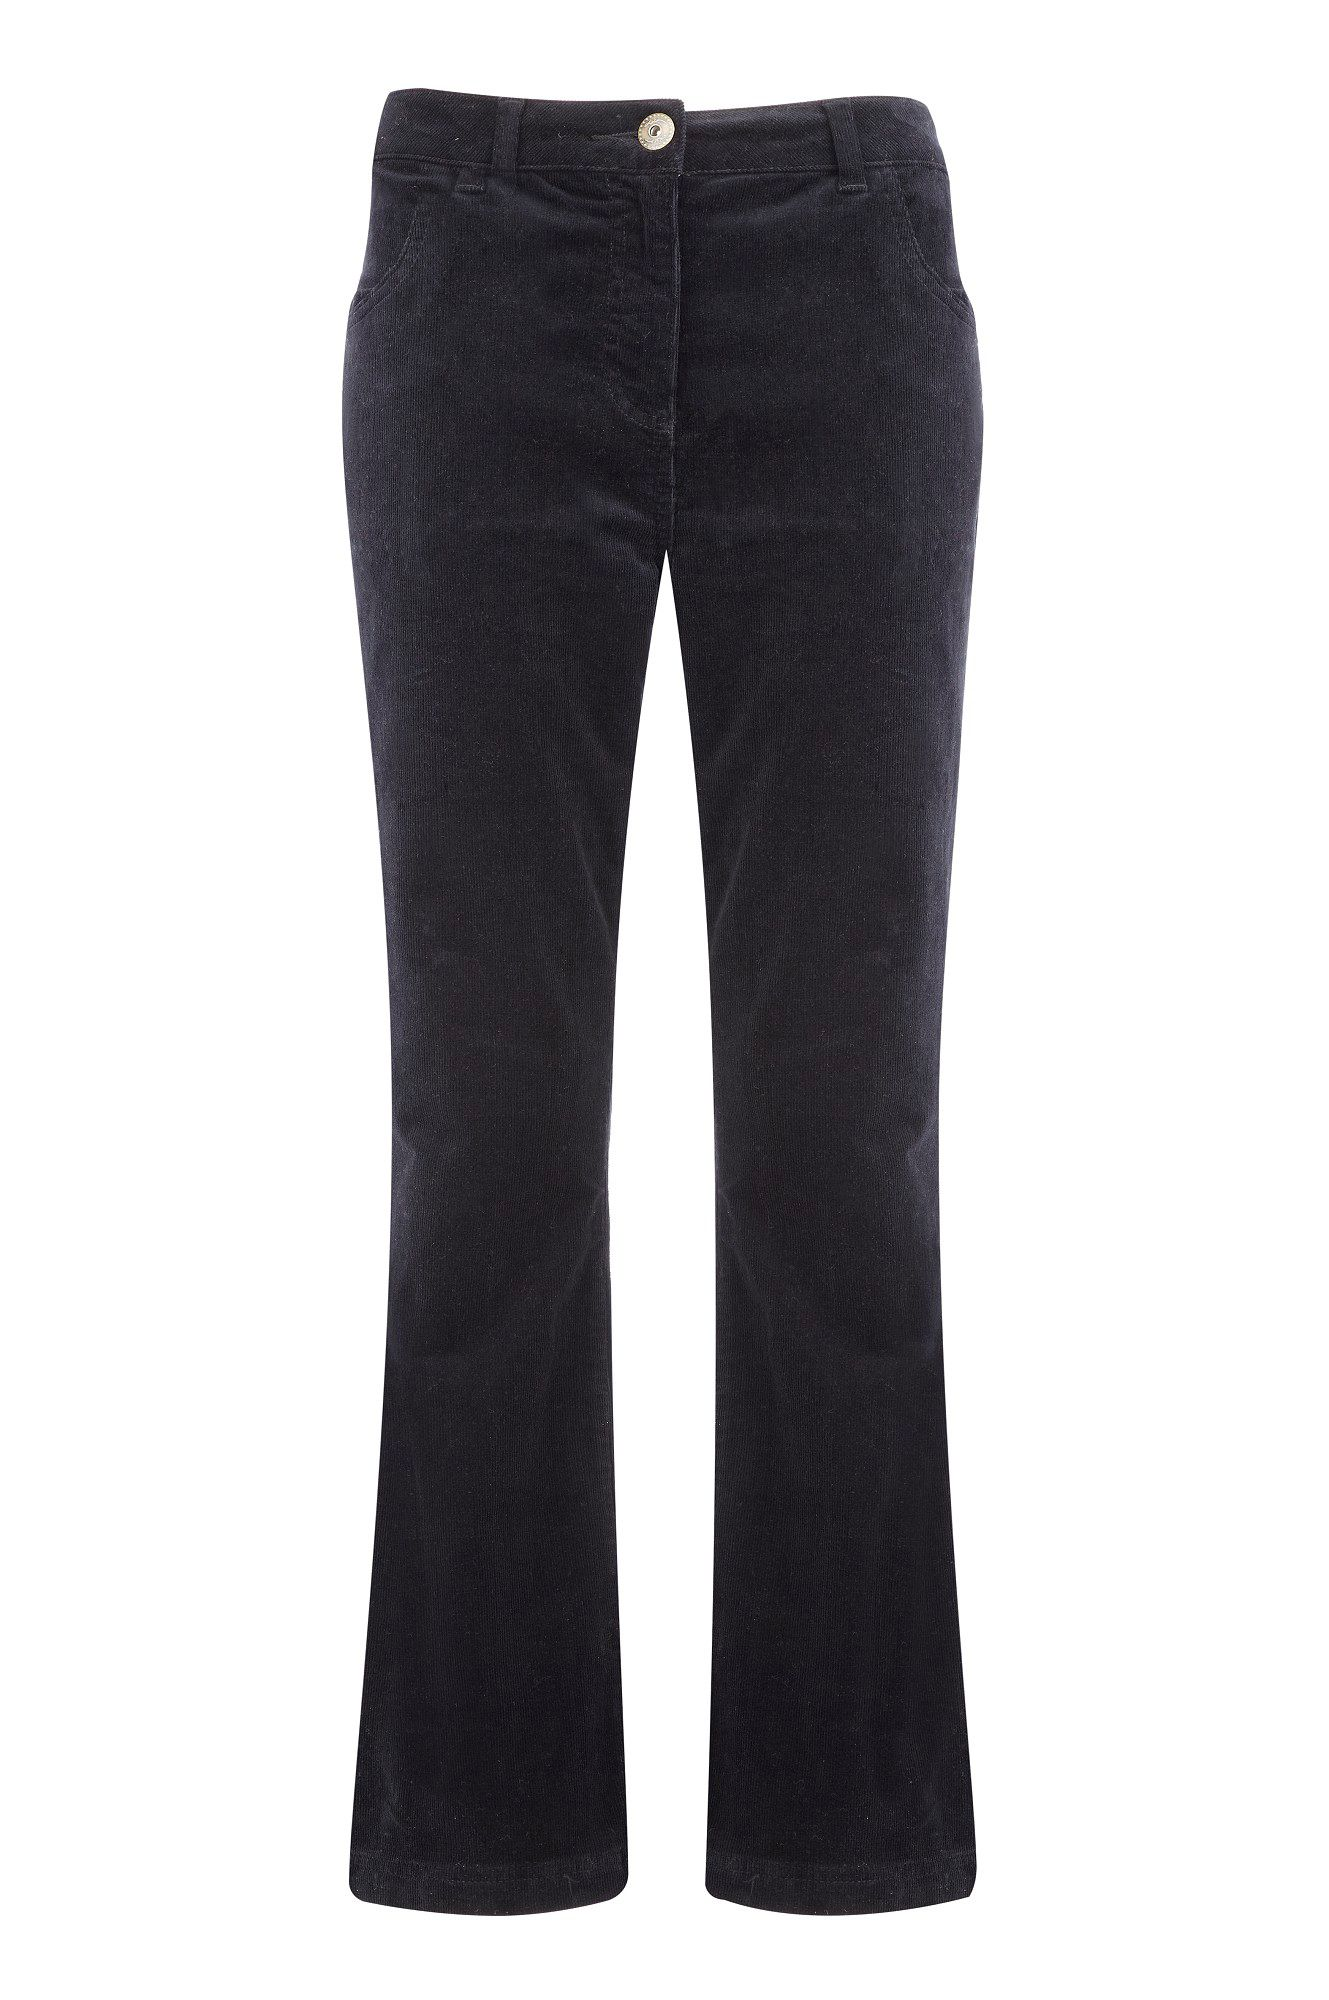 Navy classic leg cord trousers long